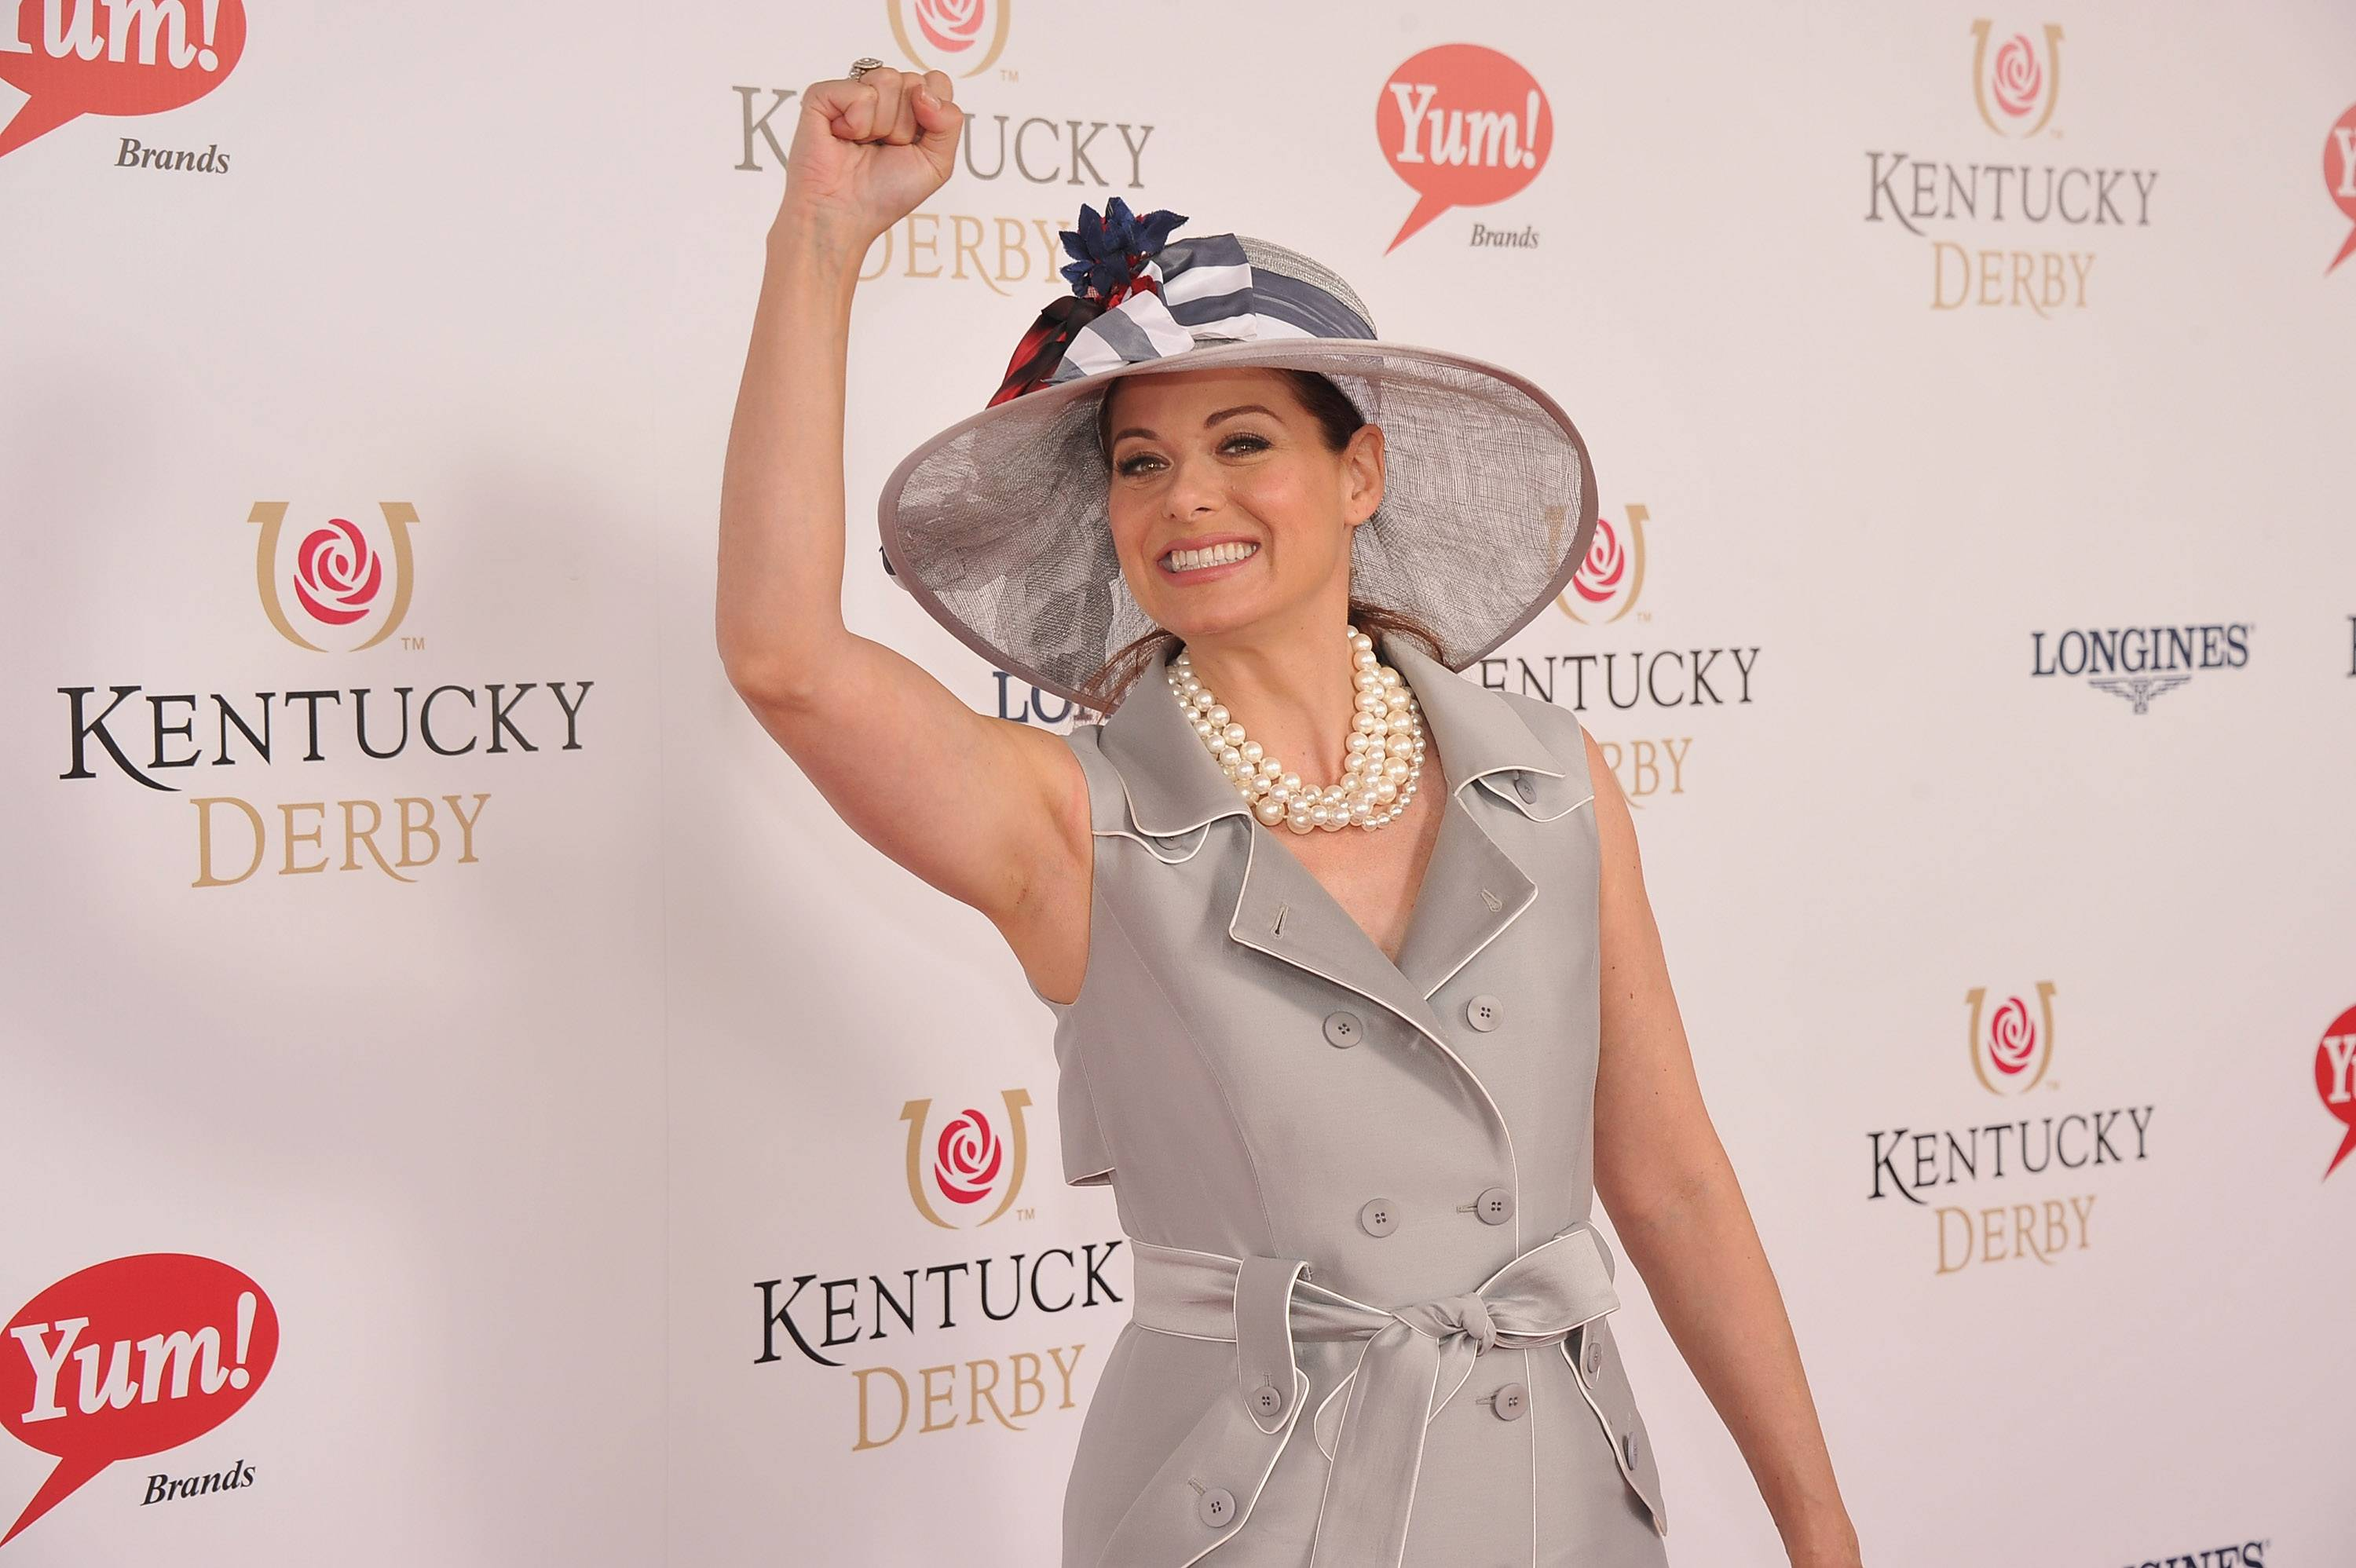 Debra Messing wears GREY GOOSE Cherry Noir Vodka Inspired Hat at the 2012 Kentucky Derby2